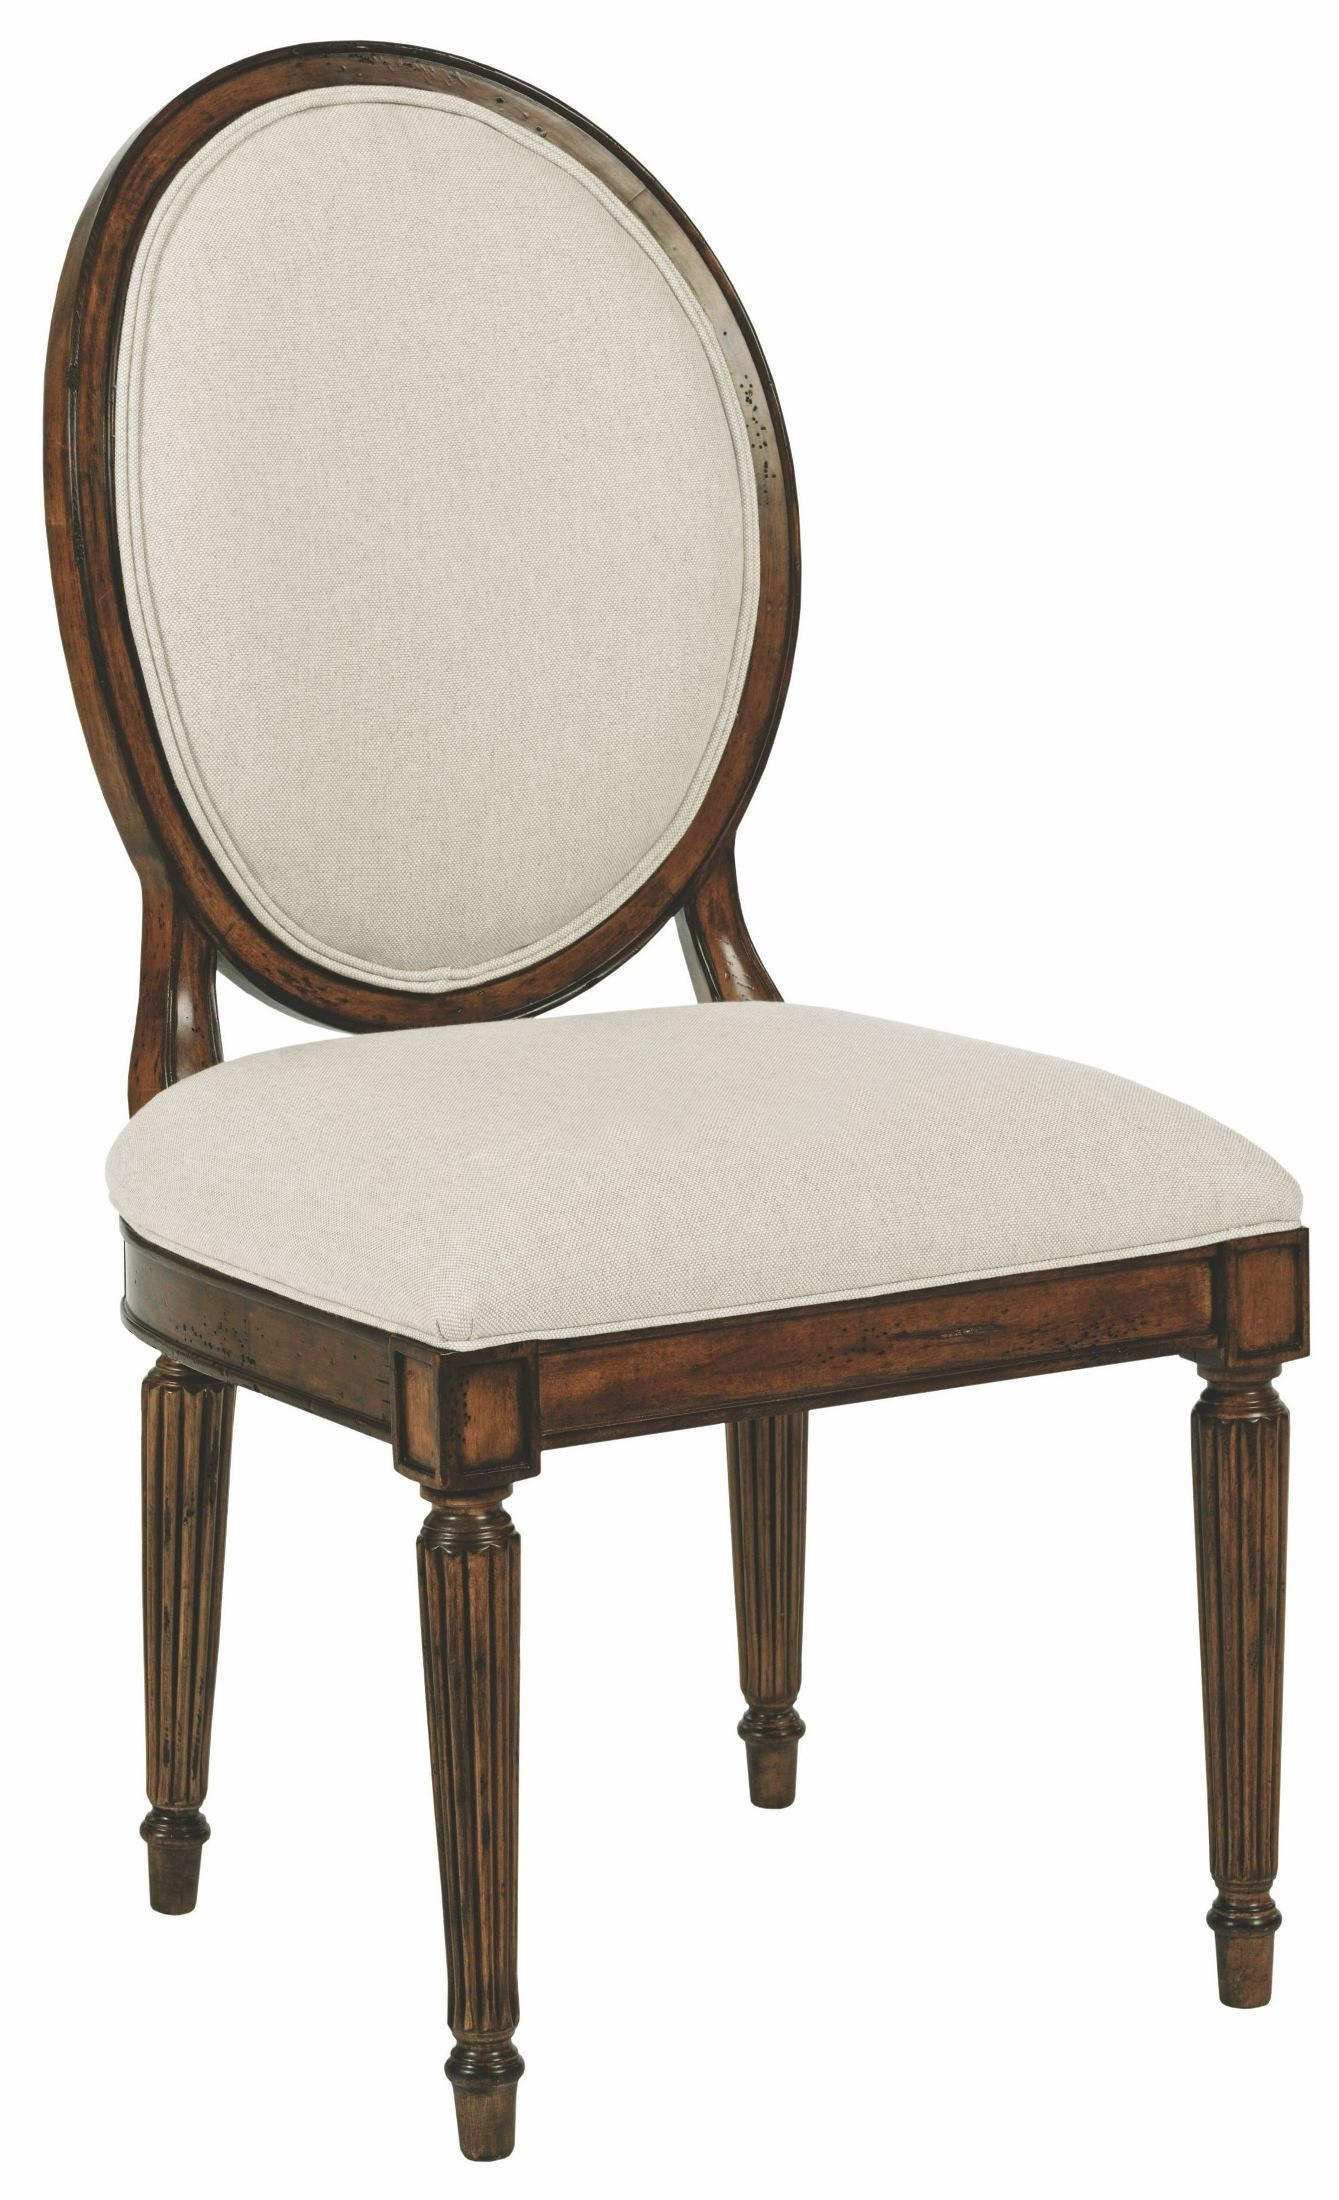 Oval Back Chair Artisans Shoppe Tobacco Oval Back Side Chair Set Of 2 From